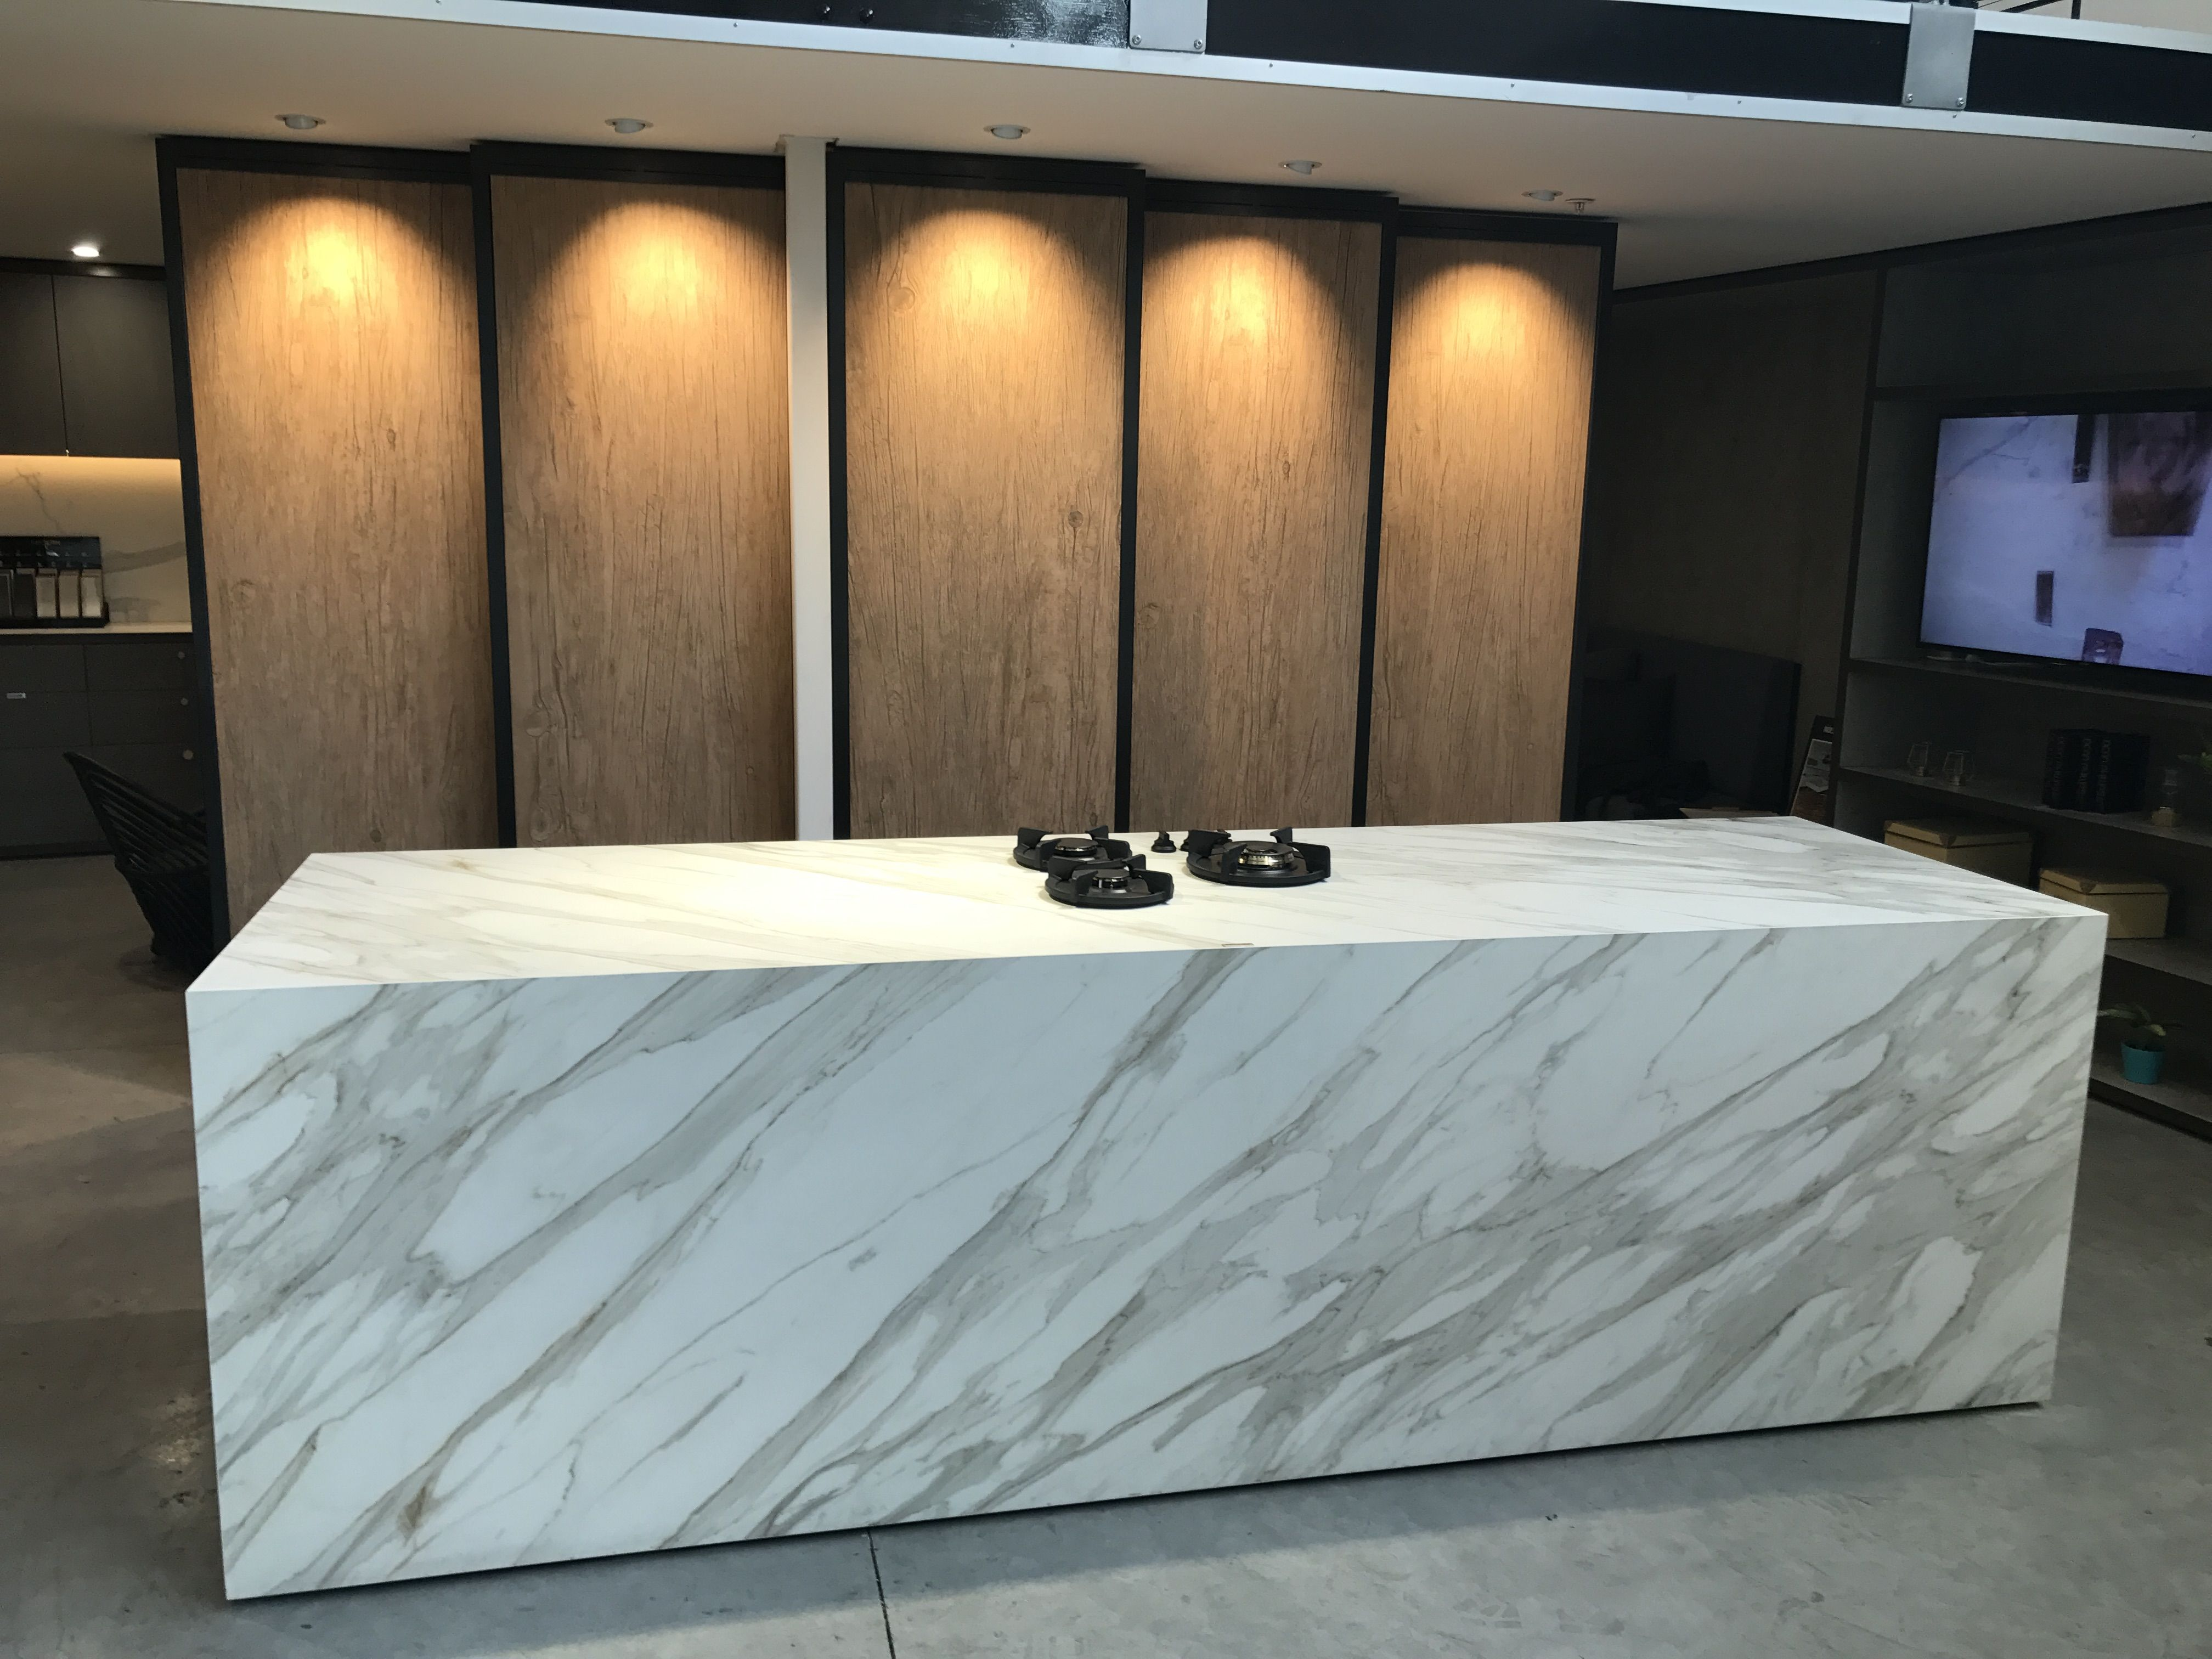 Neolith Calacatta Gold Island Bench With @Pittcookingaus 3 Burner (Cima)